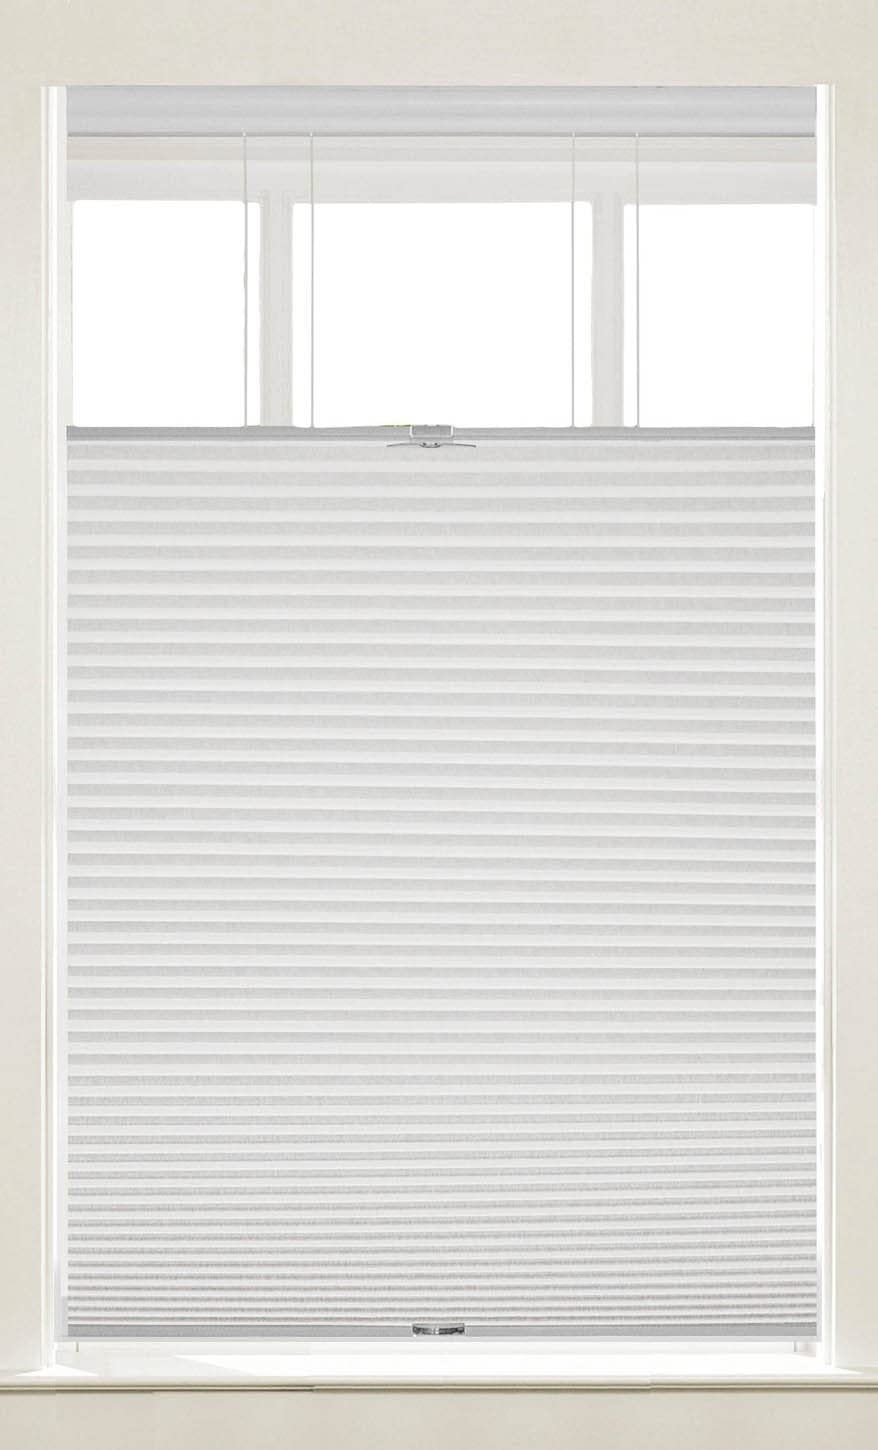 PowerSellerUSA Cordless Window Blinds Cellular Top-Down Bottom-Up Honeycomb Pleated 3/8″ Light Filtering Window Shades White